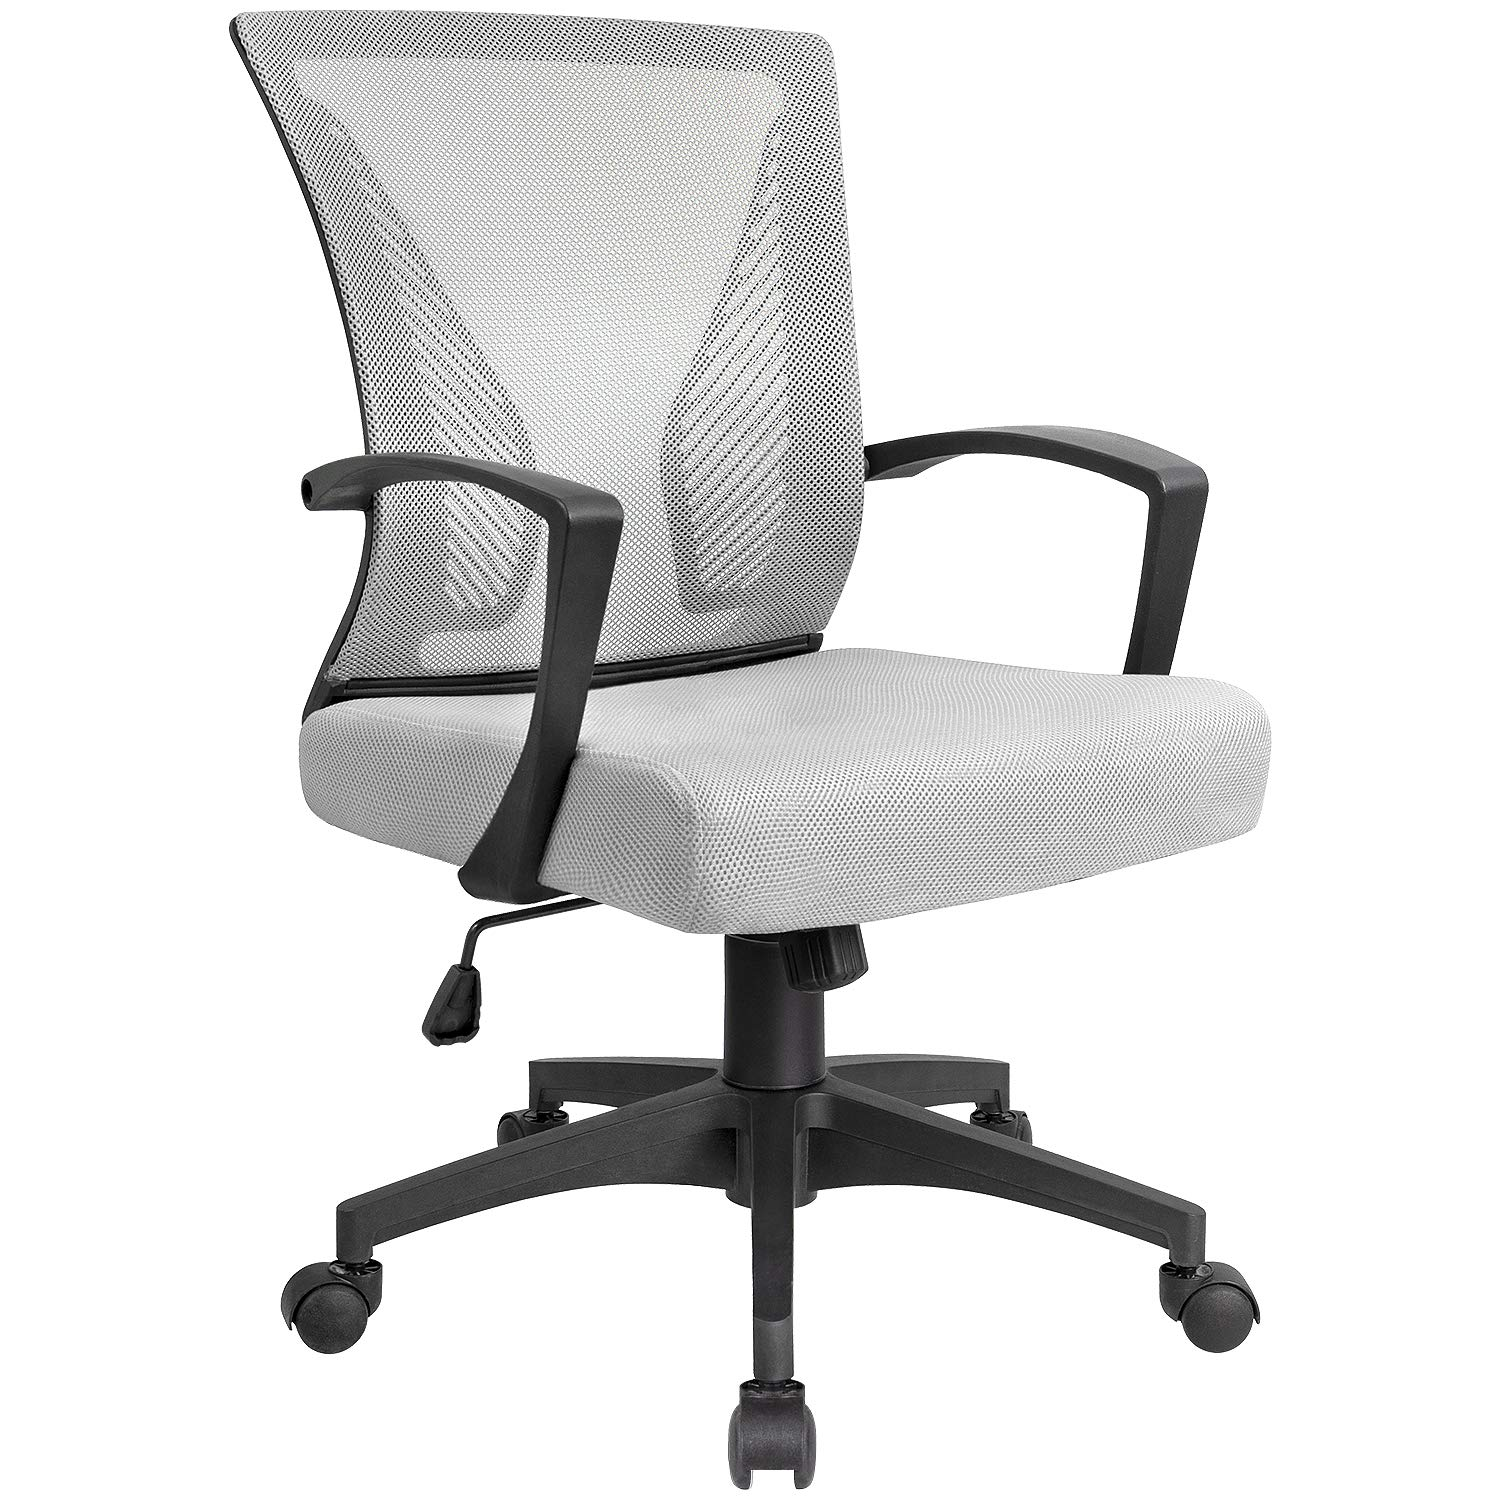 AmazonBasics Classic Adjustable Office Desk Chair – Twill Fabric, Beige, BIFMA Certified